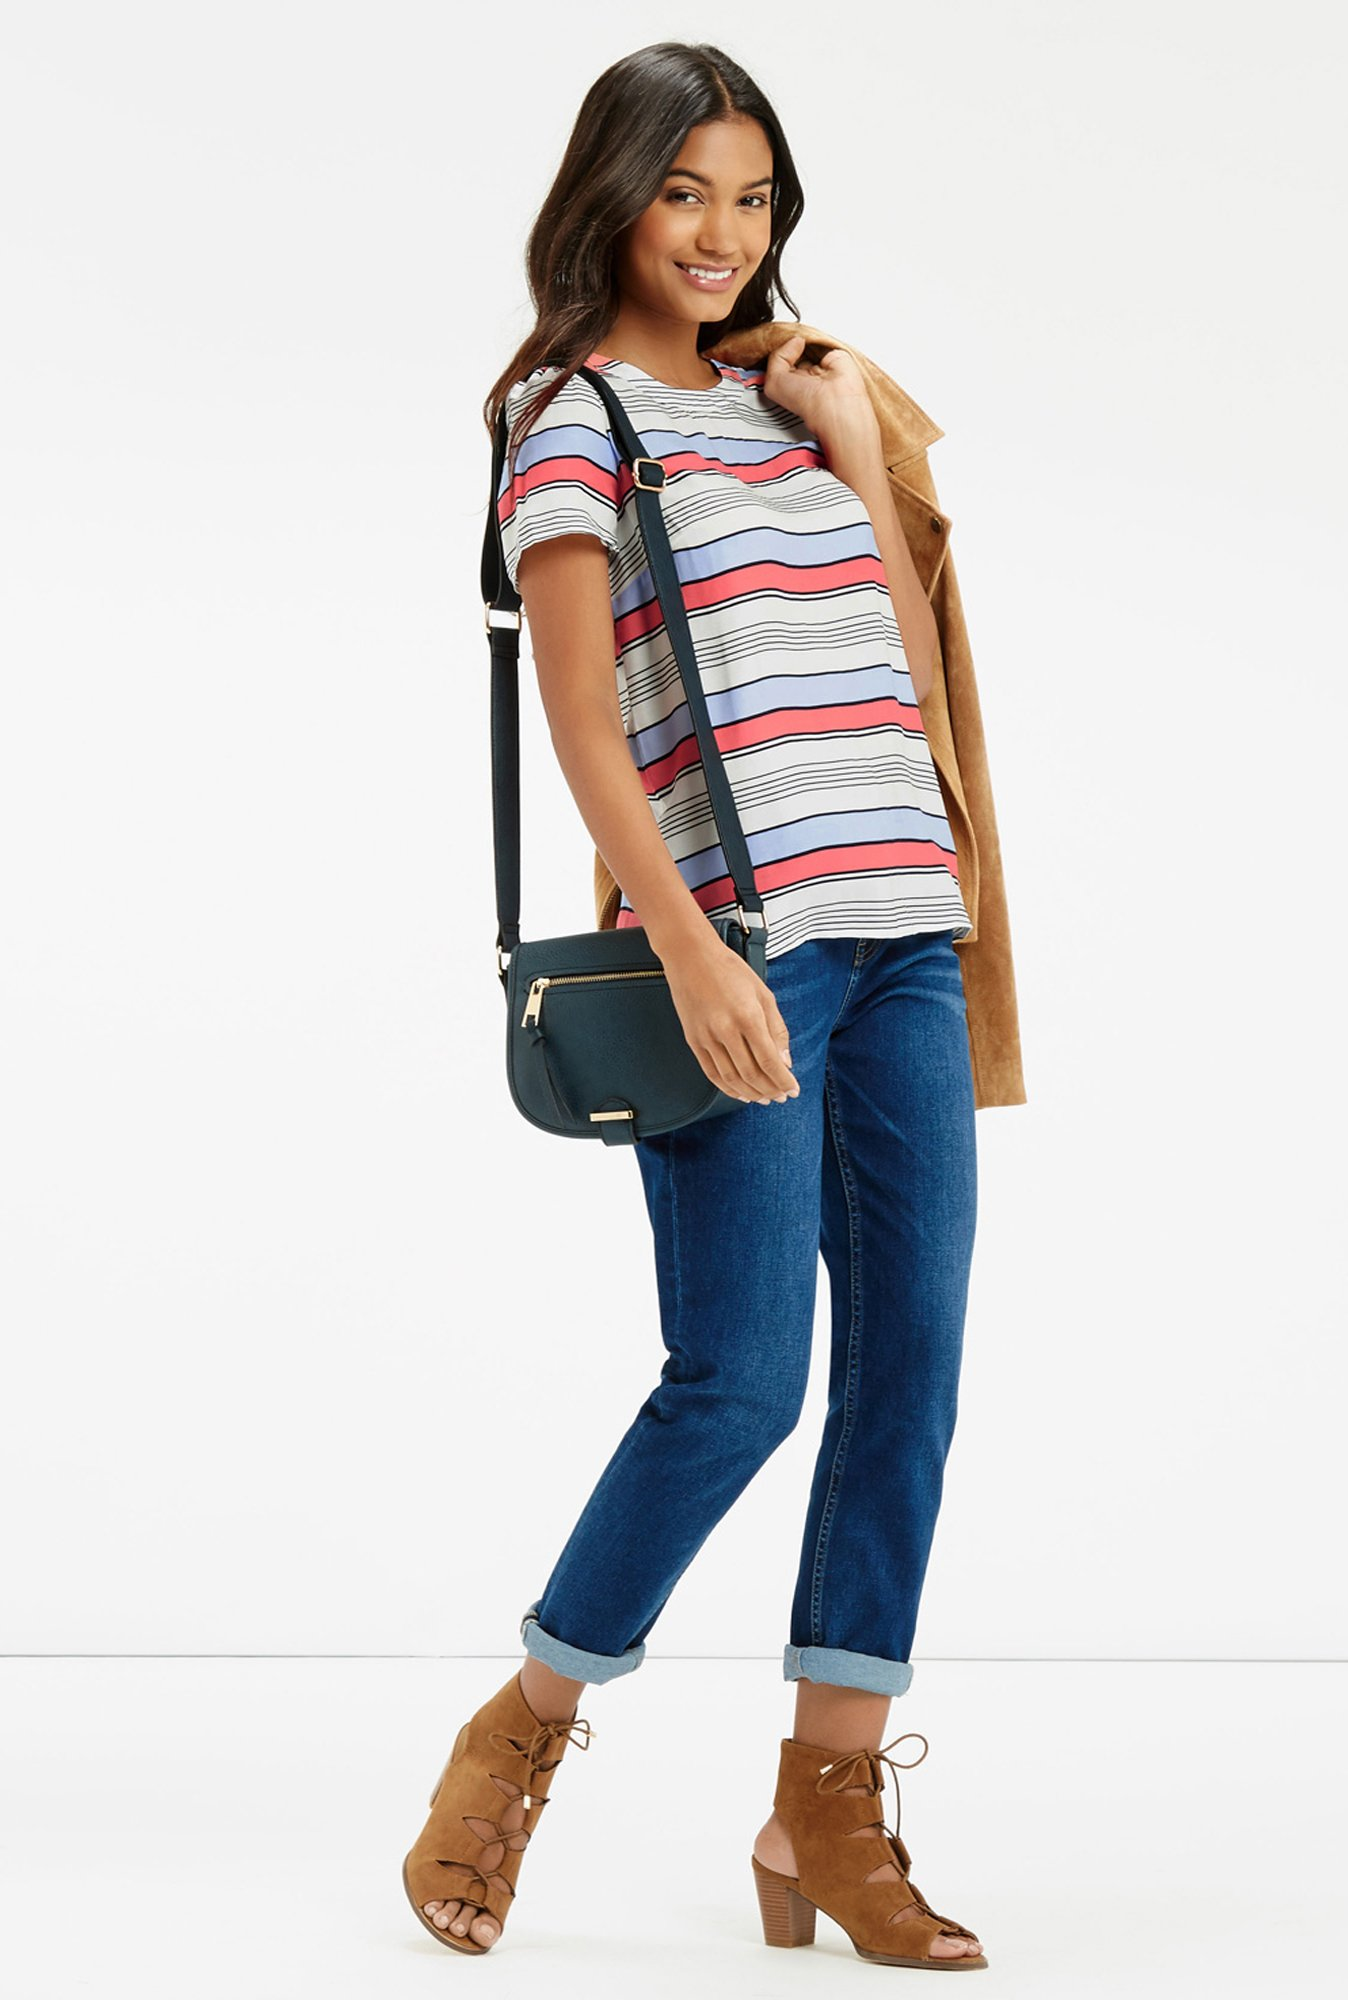 Oasis Multicolor Striped Top